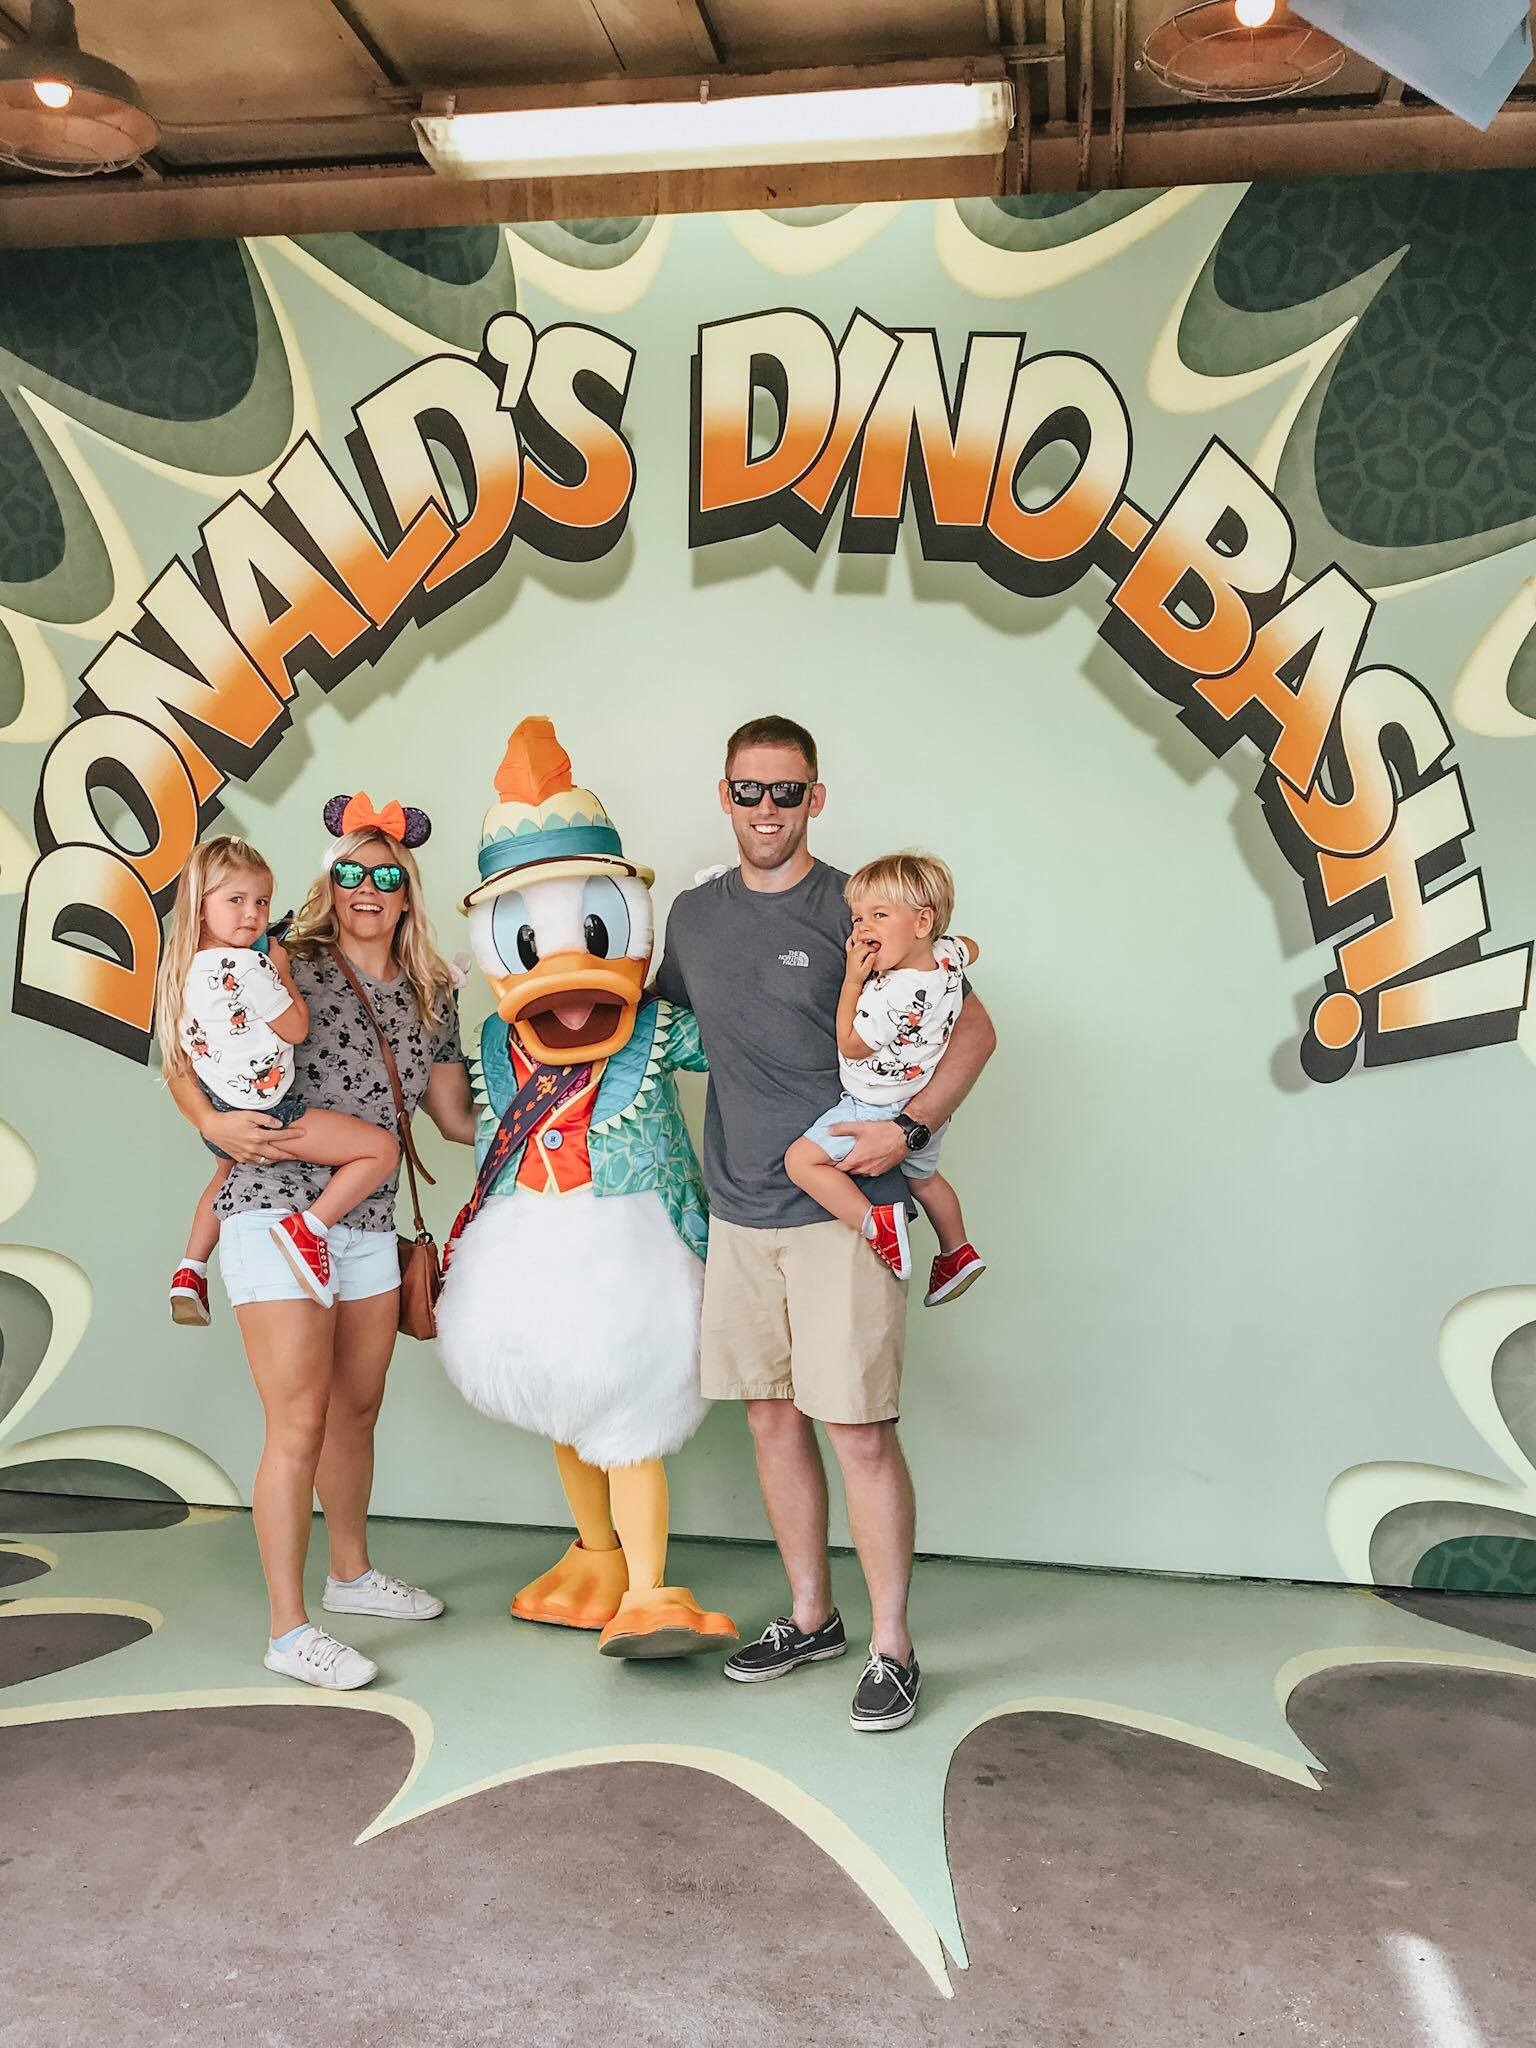 Donald duck in Animal kingdom!